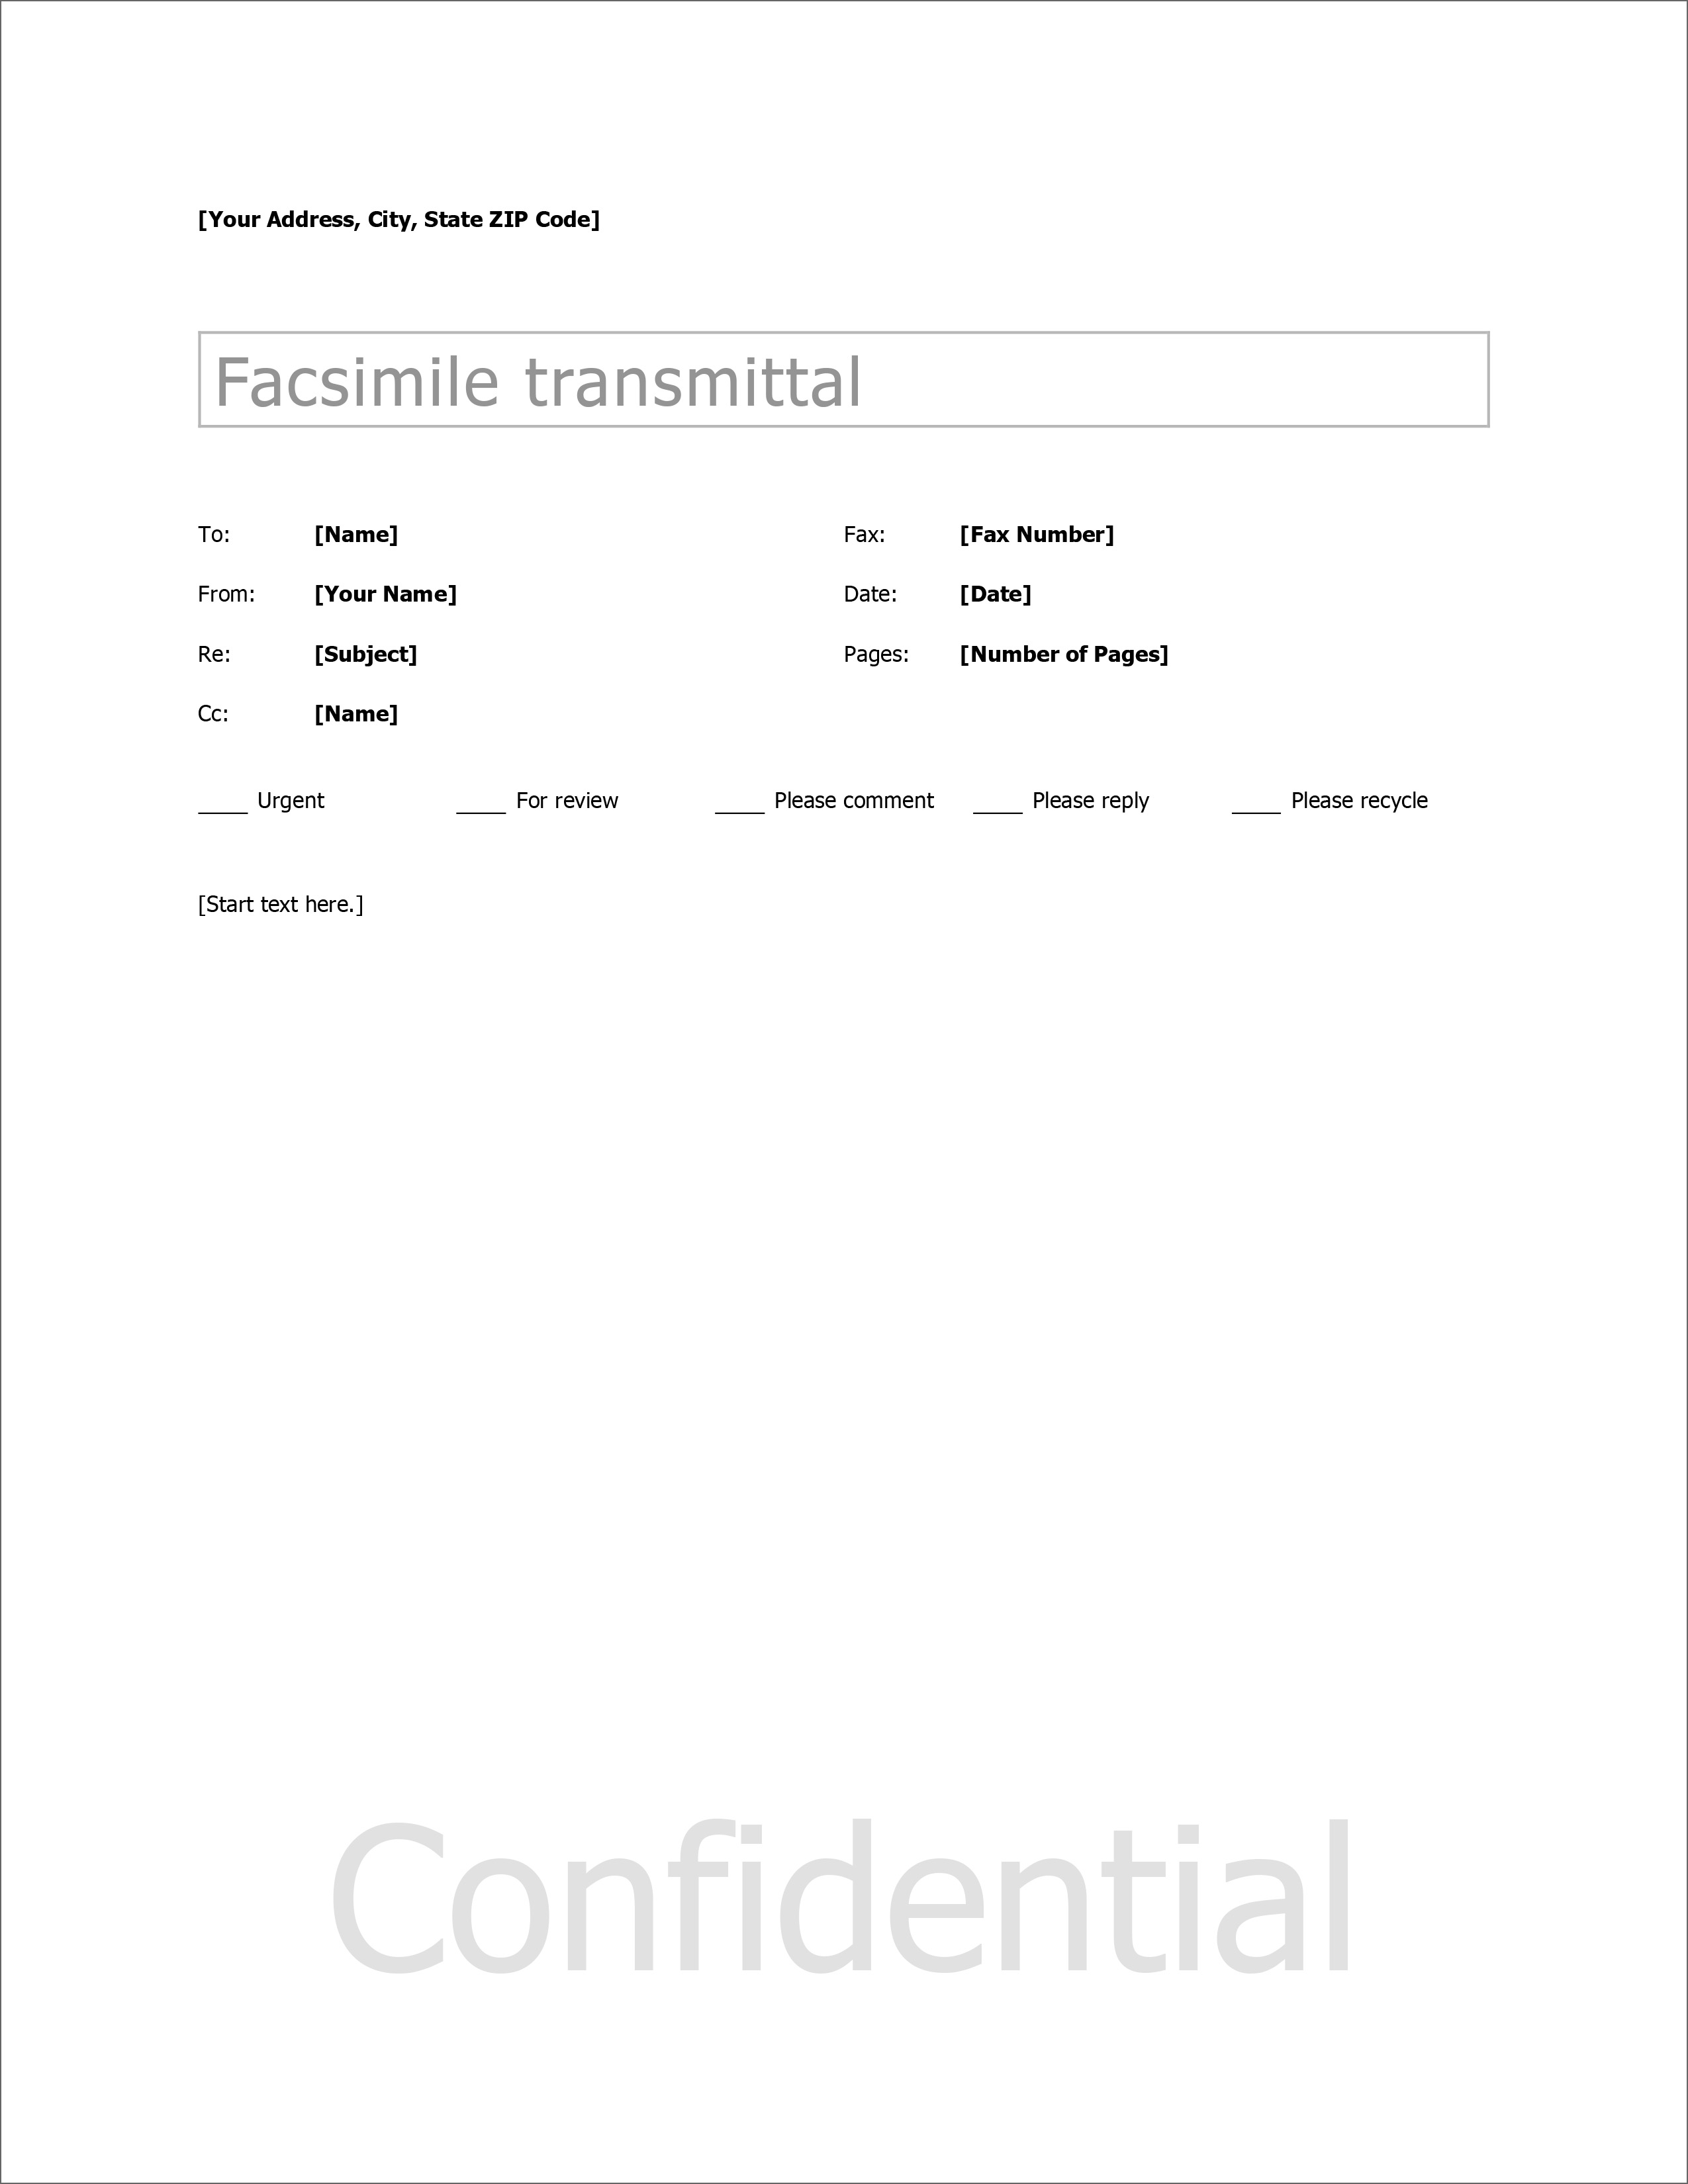 Cover Letter For Fax Template from www.geckoandfly.com